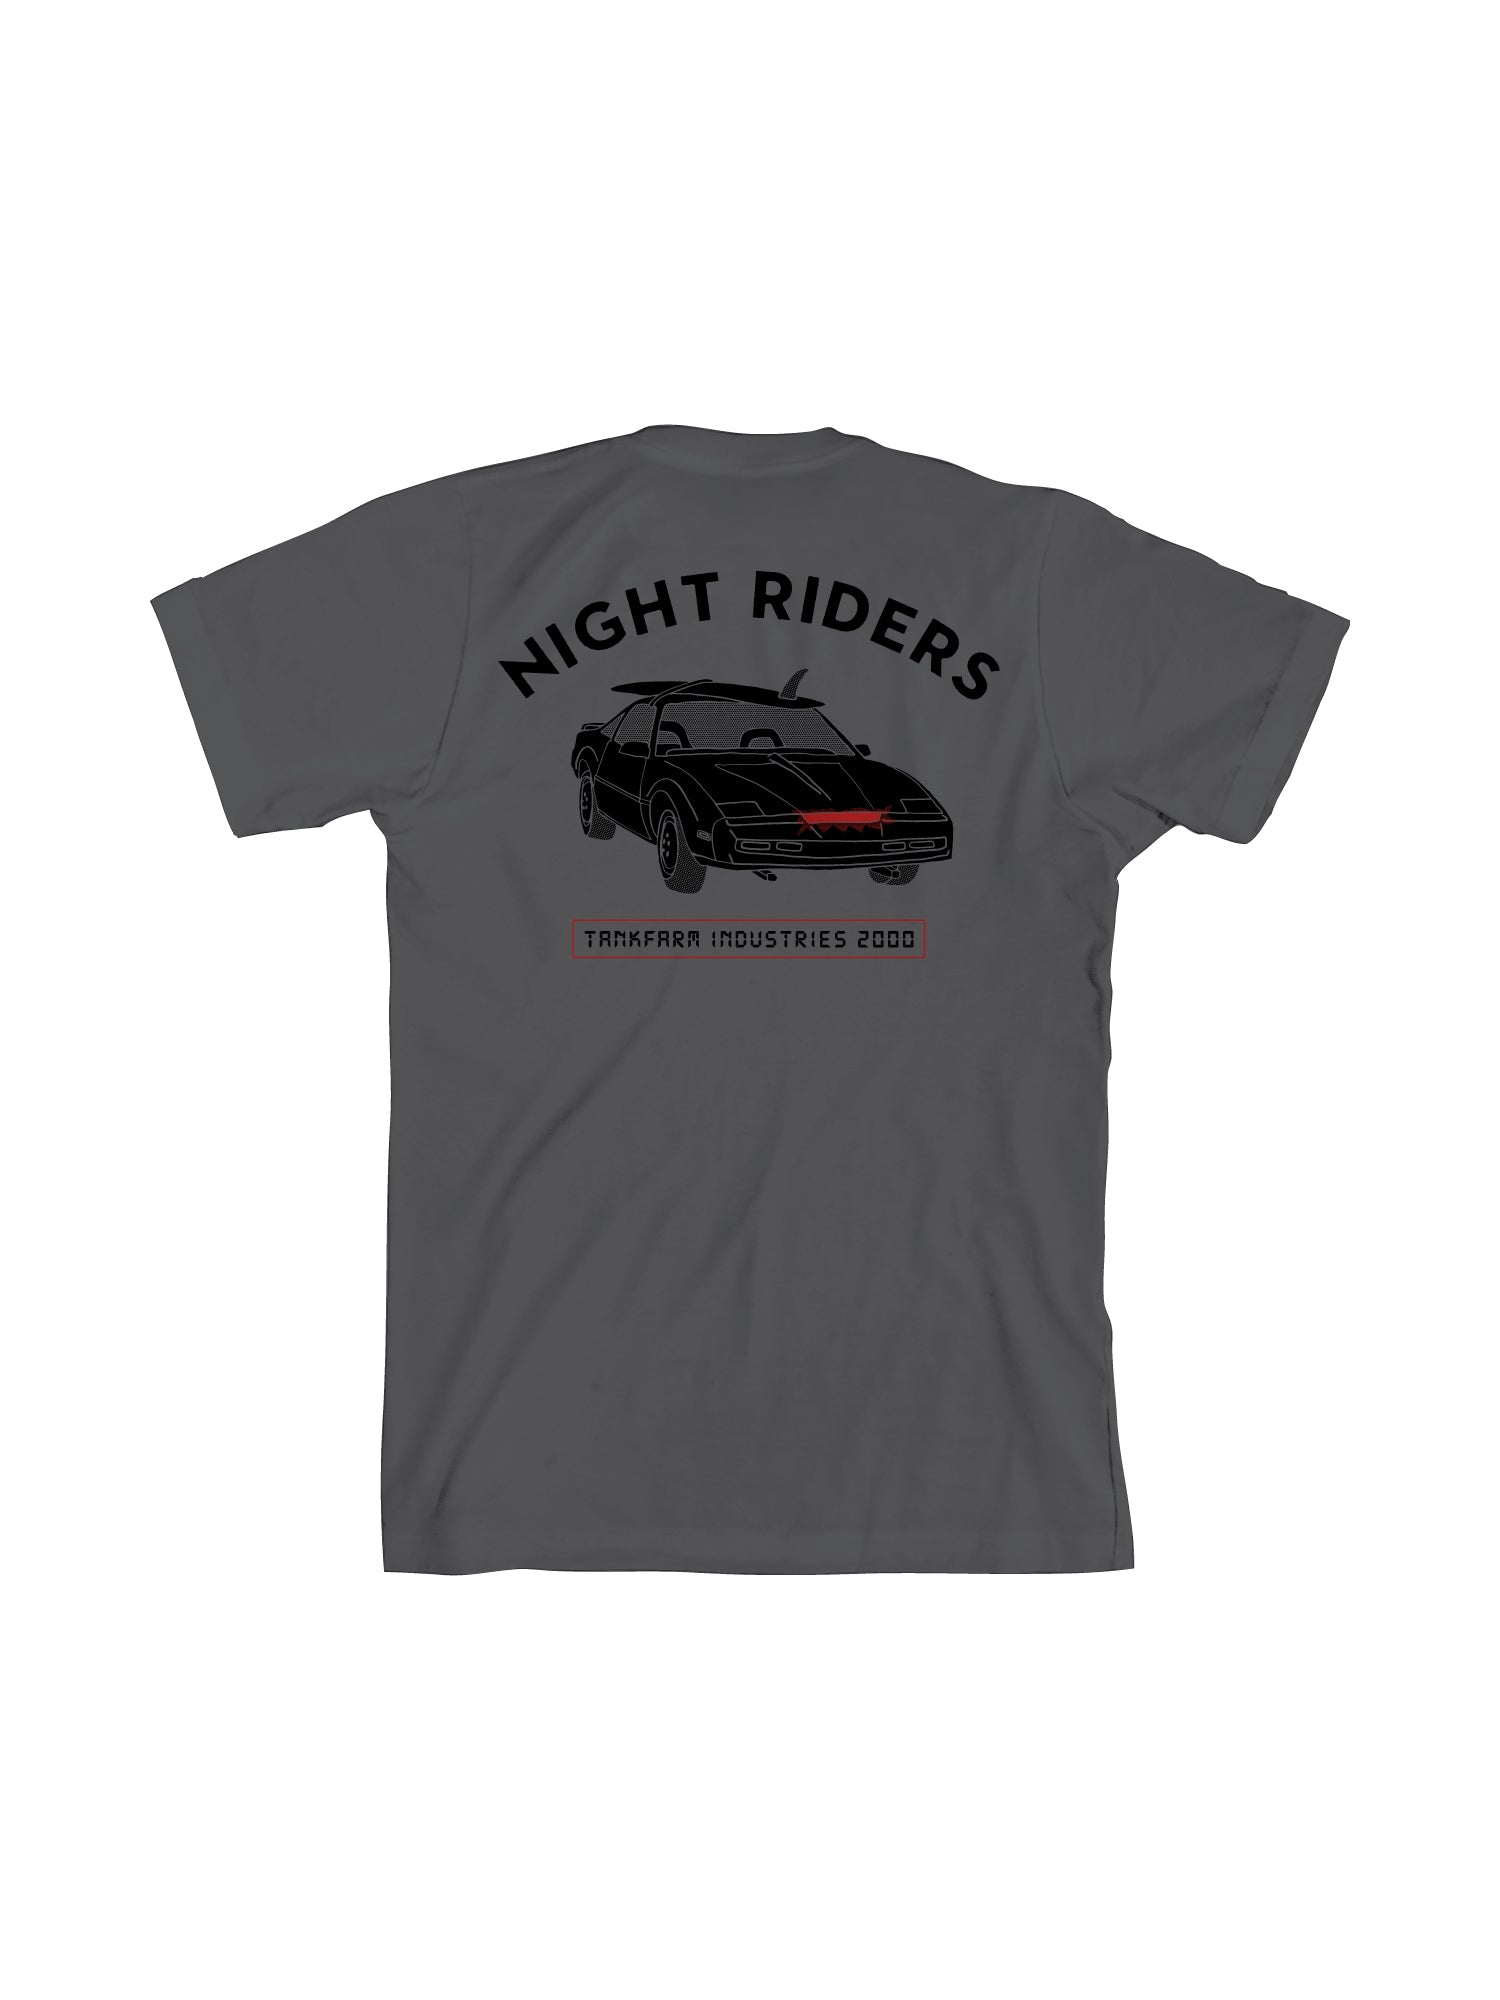 NIGHT RIDERS - HEAVY METAL - Tankfarm & Co.